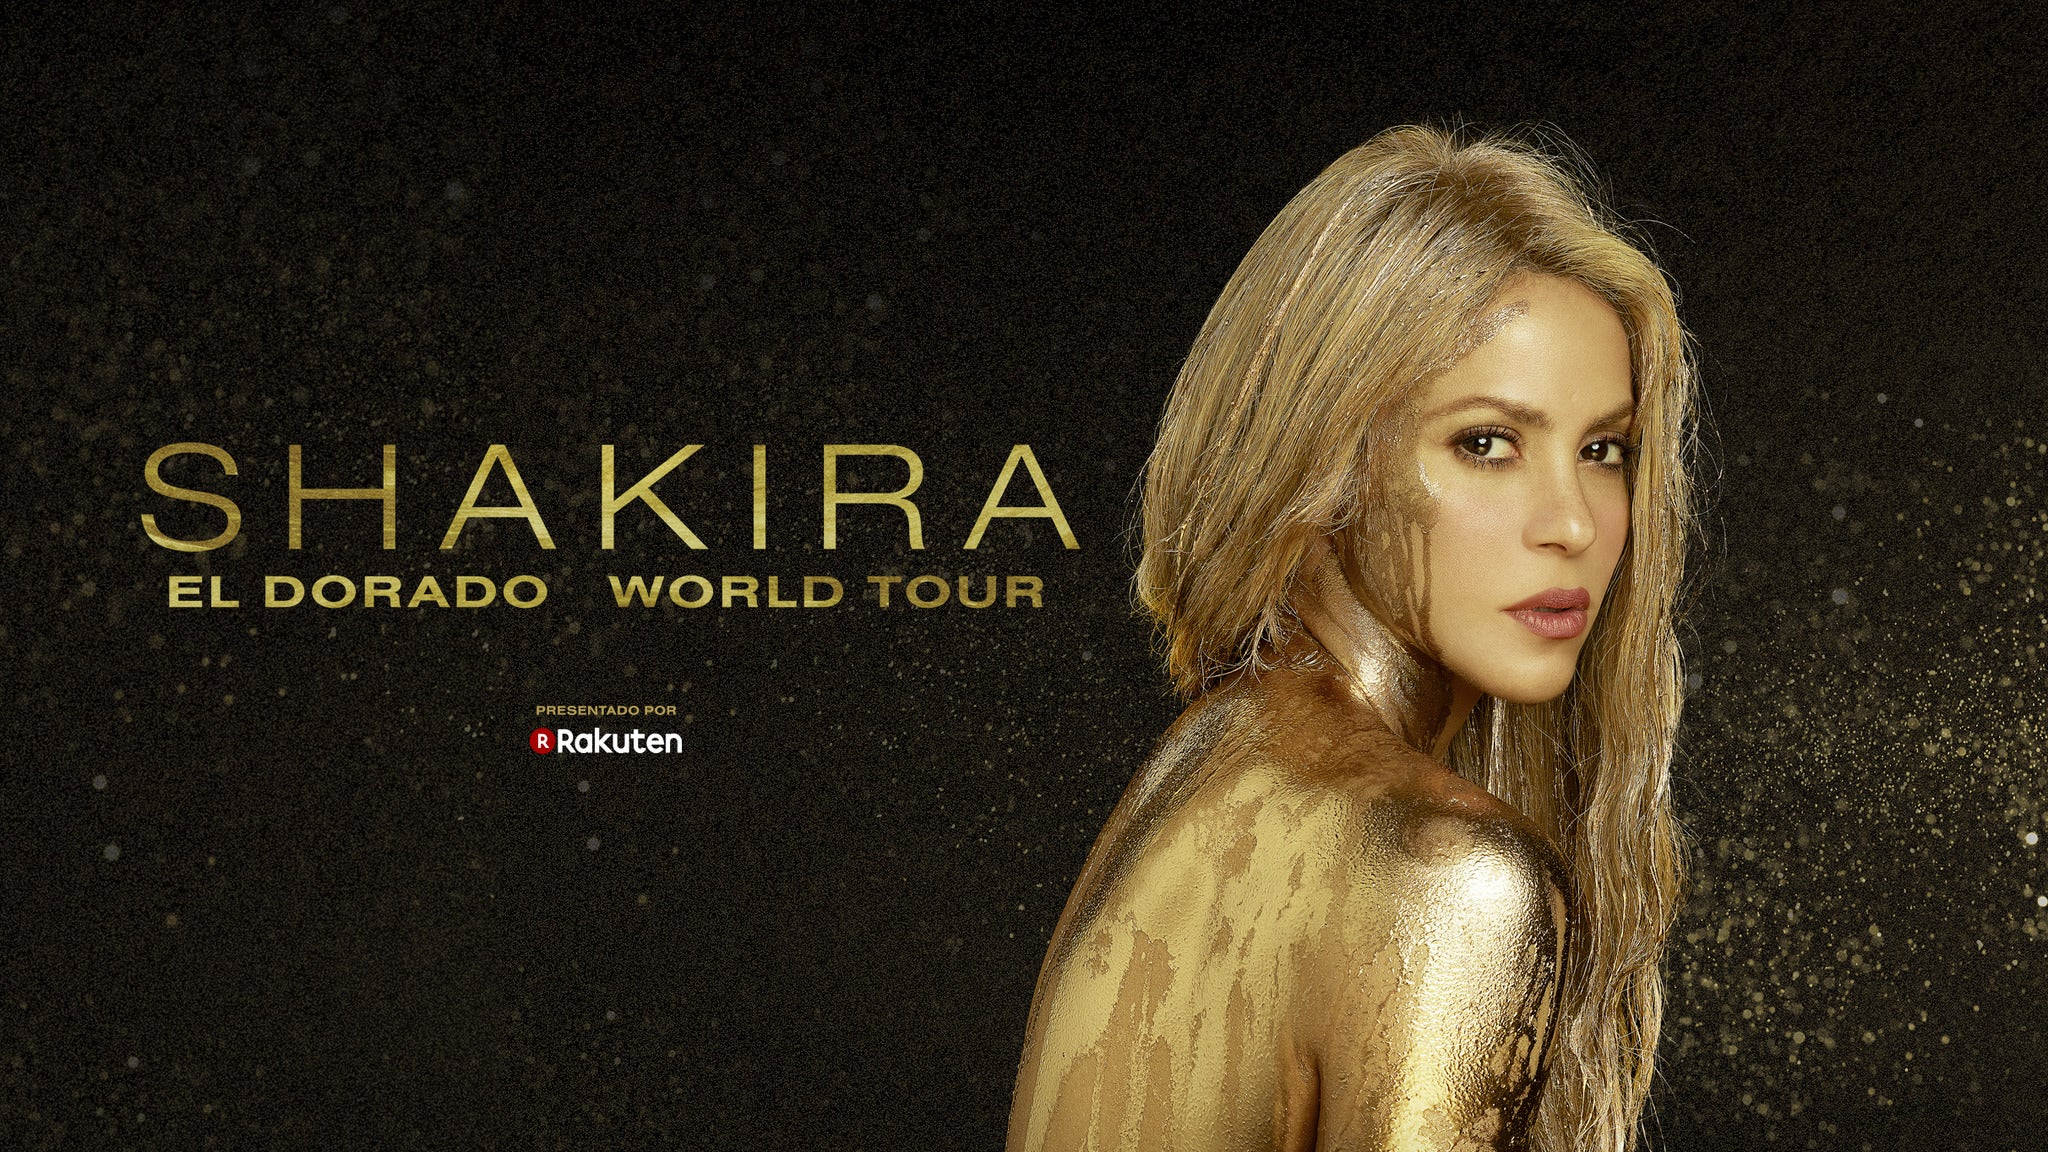 Shakira at Toyota Center - TX - Houston, TX 77002